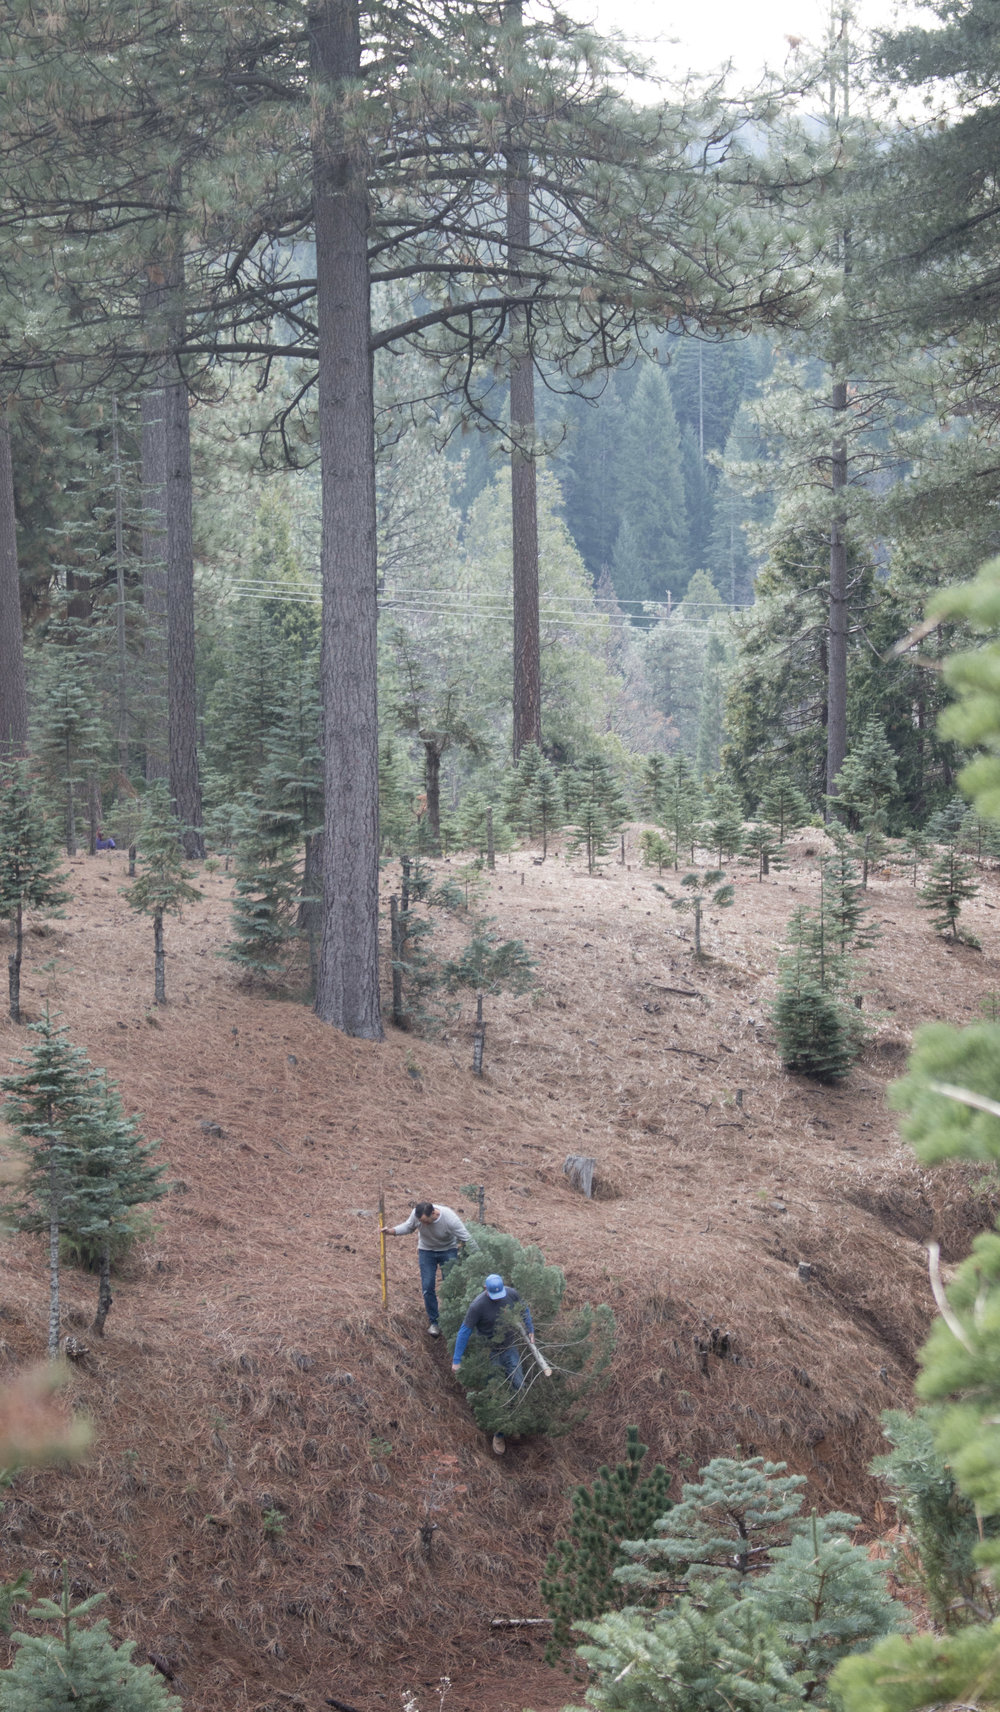 Forget about running with scissors, how about uncovered saws and steep hillsides.